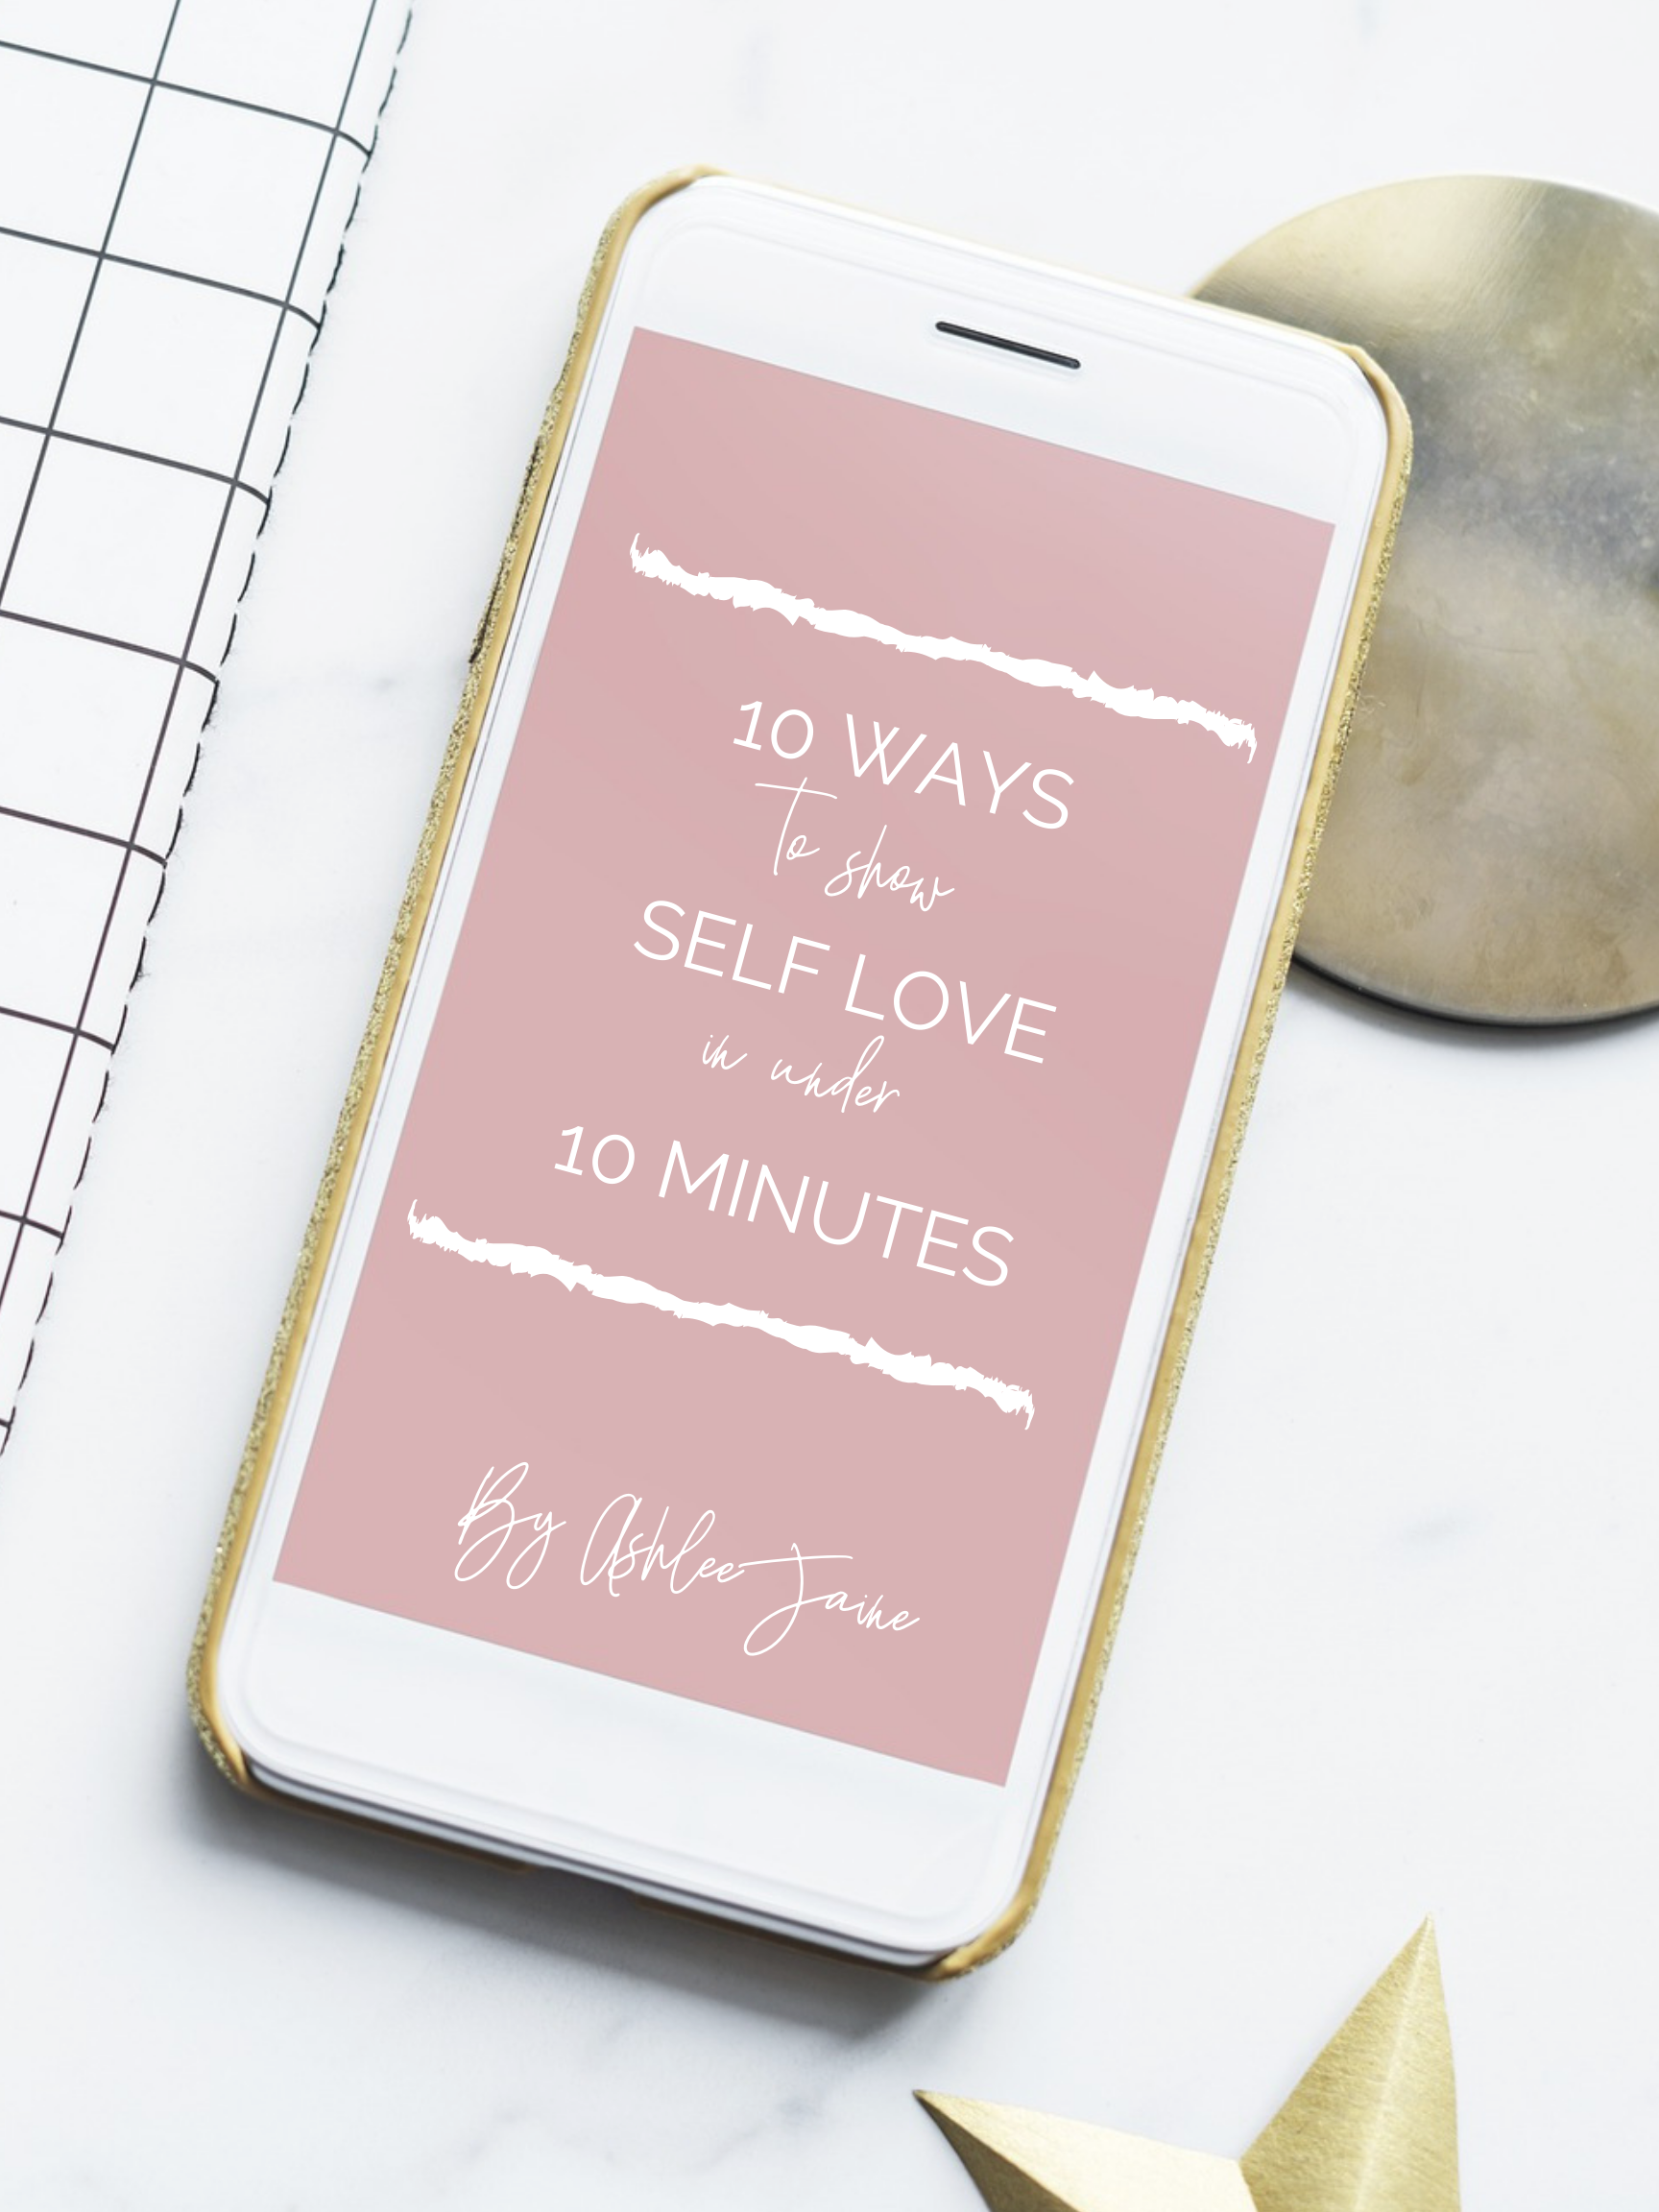 10 WAYS TO SHOW SELF LOVE IN UNDER 10 MINUTES